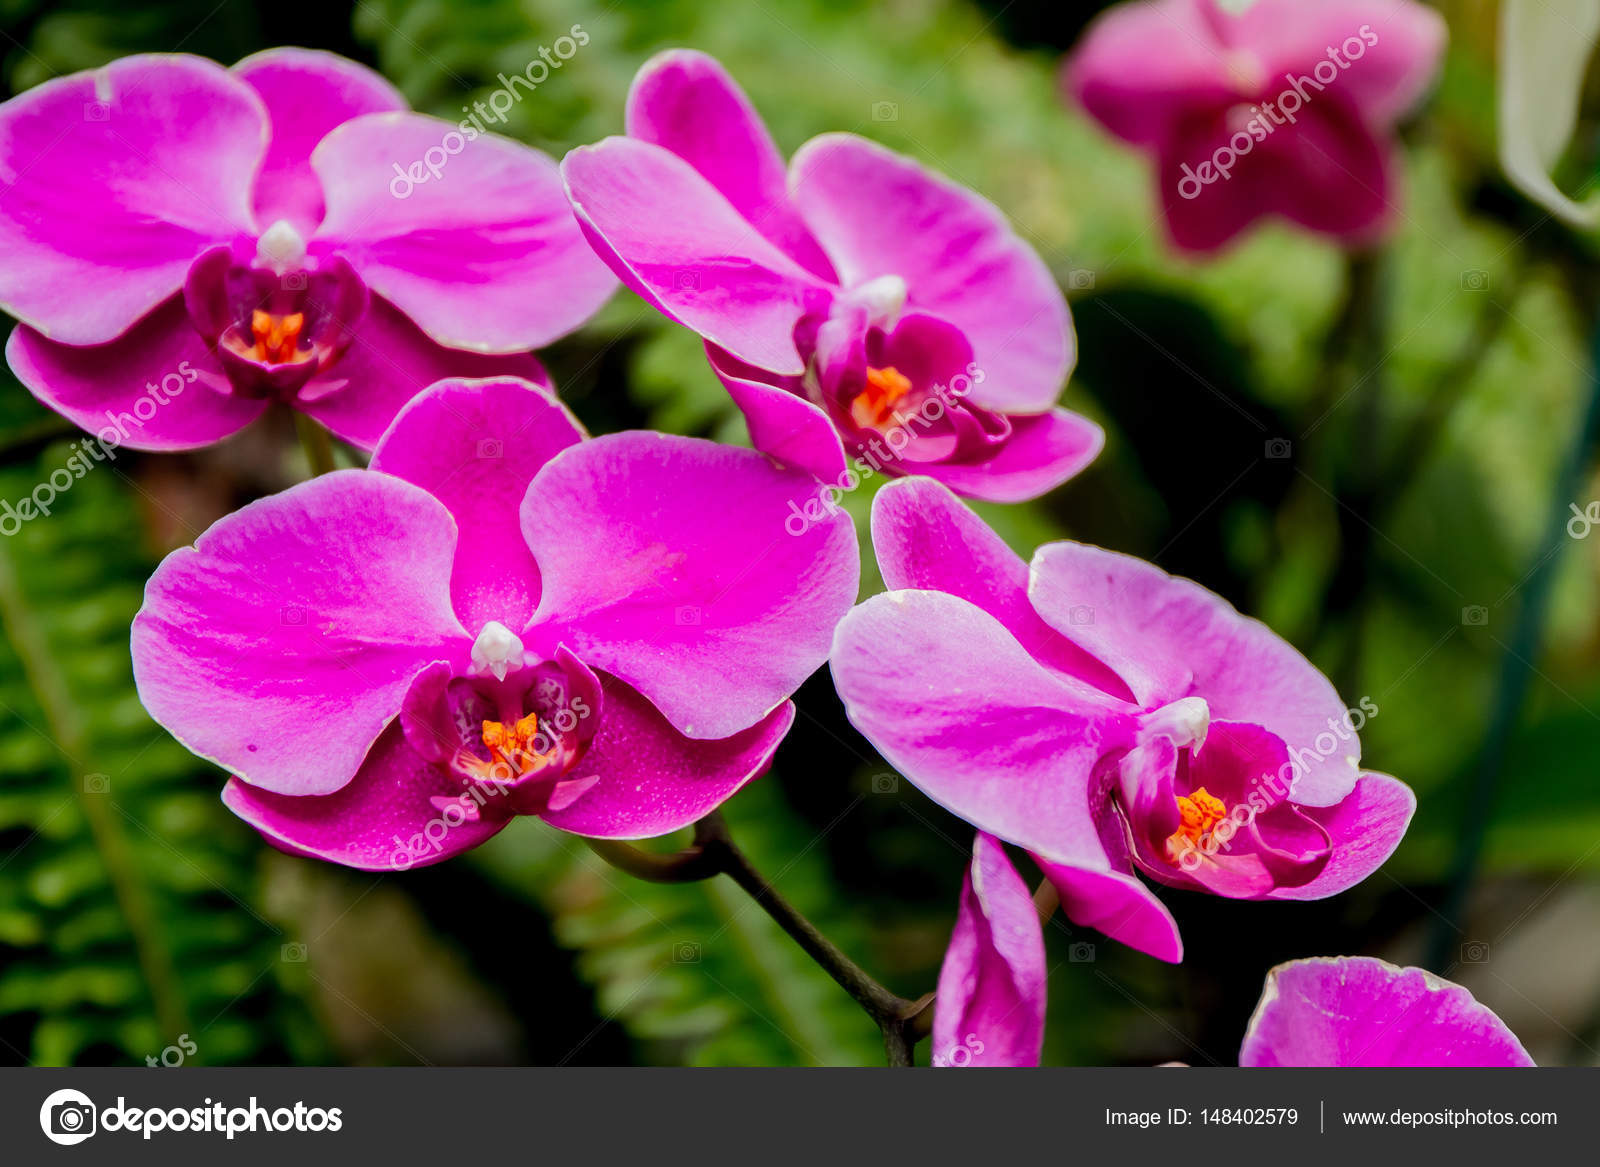 Beautiful orchid flowers stock photo volare2004 148402579 beautiful orchid flowers on natural background photo by volare2004 izmirmasajfo